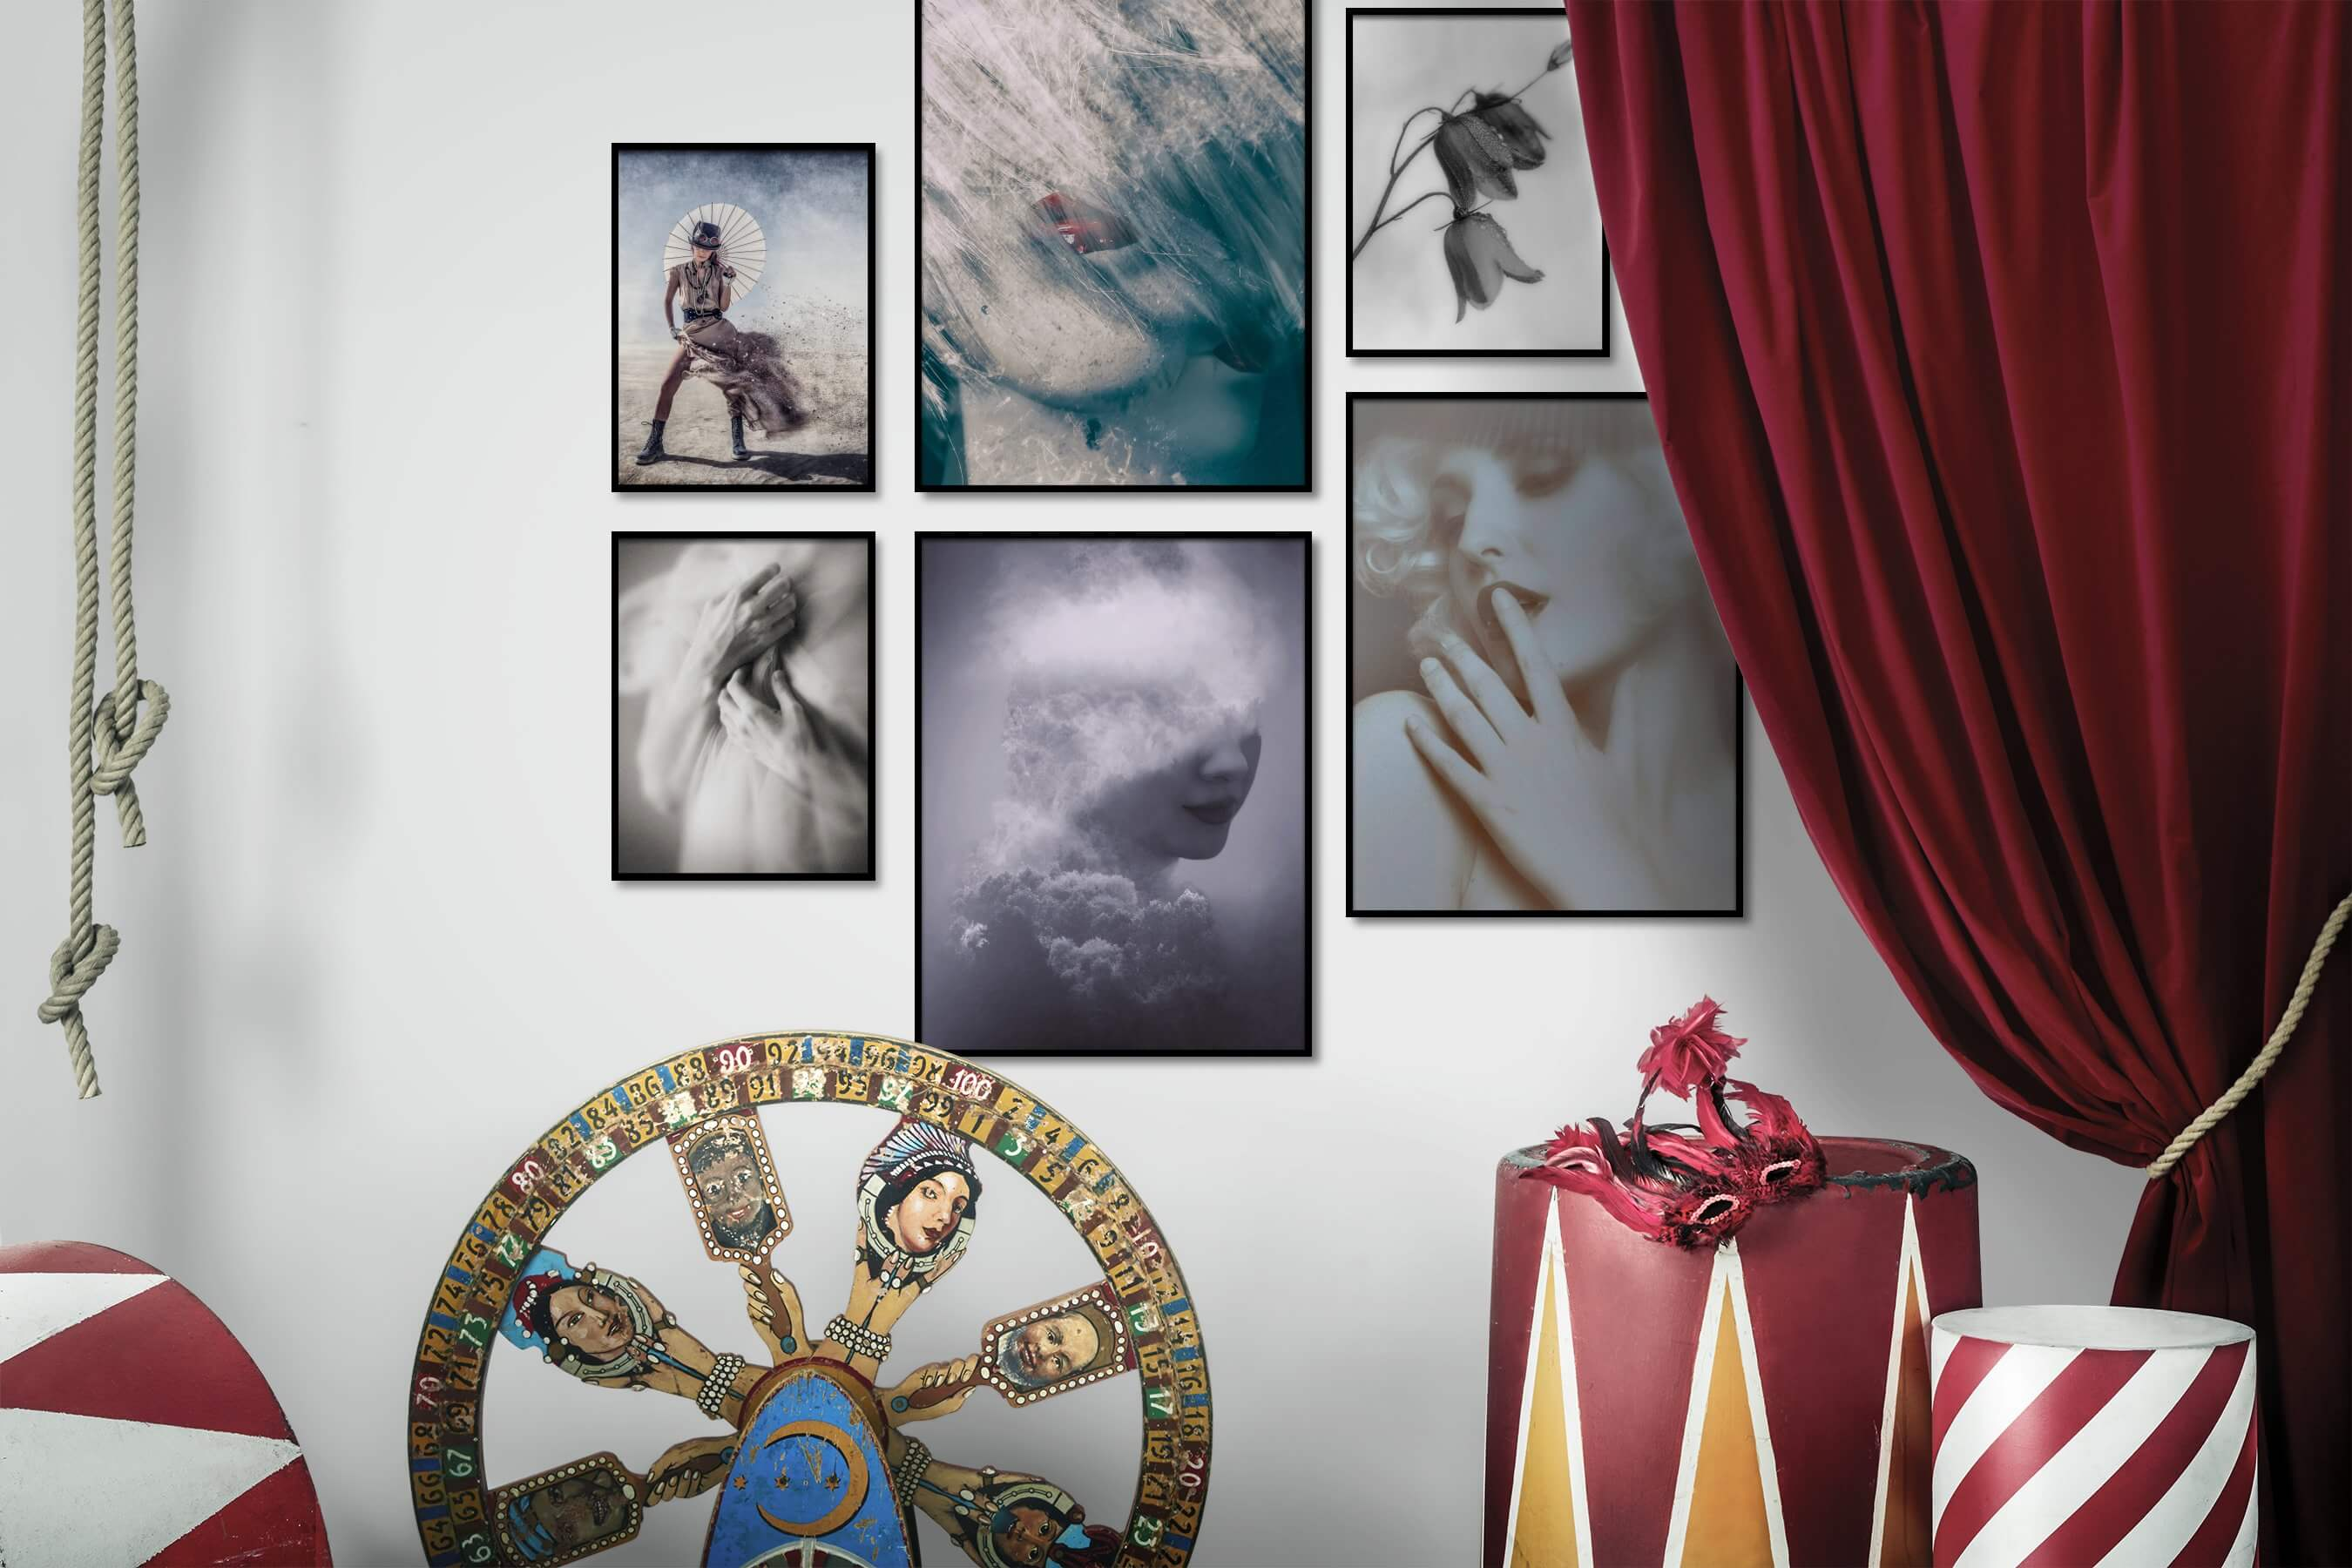 Gallery wall idea with six framed pictures arranged on a wall depicting Fashion & Beauty, Vintage, Black & White, For the Moderate, Artsy, Nature, Mindfulness, For the Minimalist, and Flowers & Plants